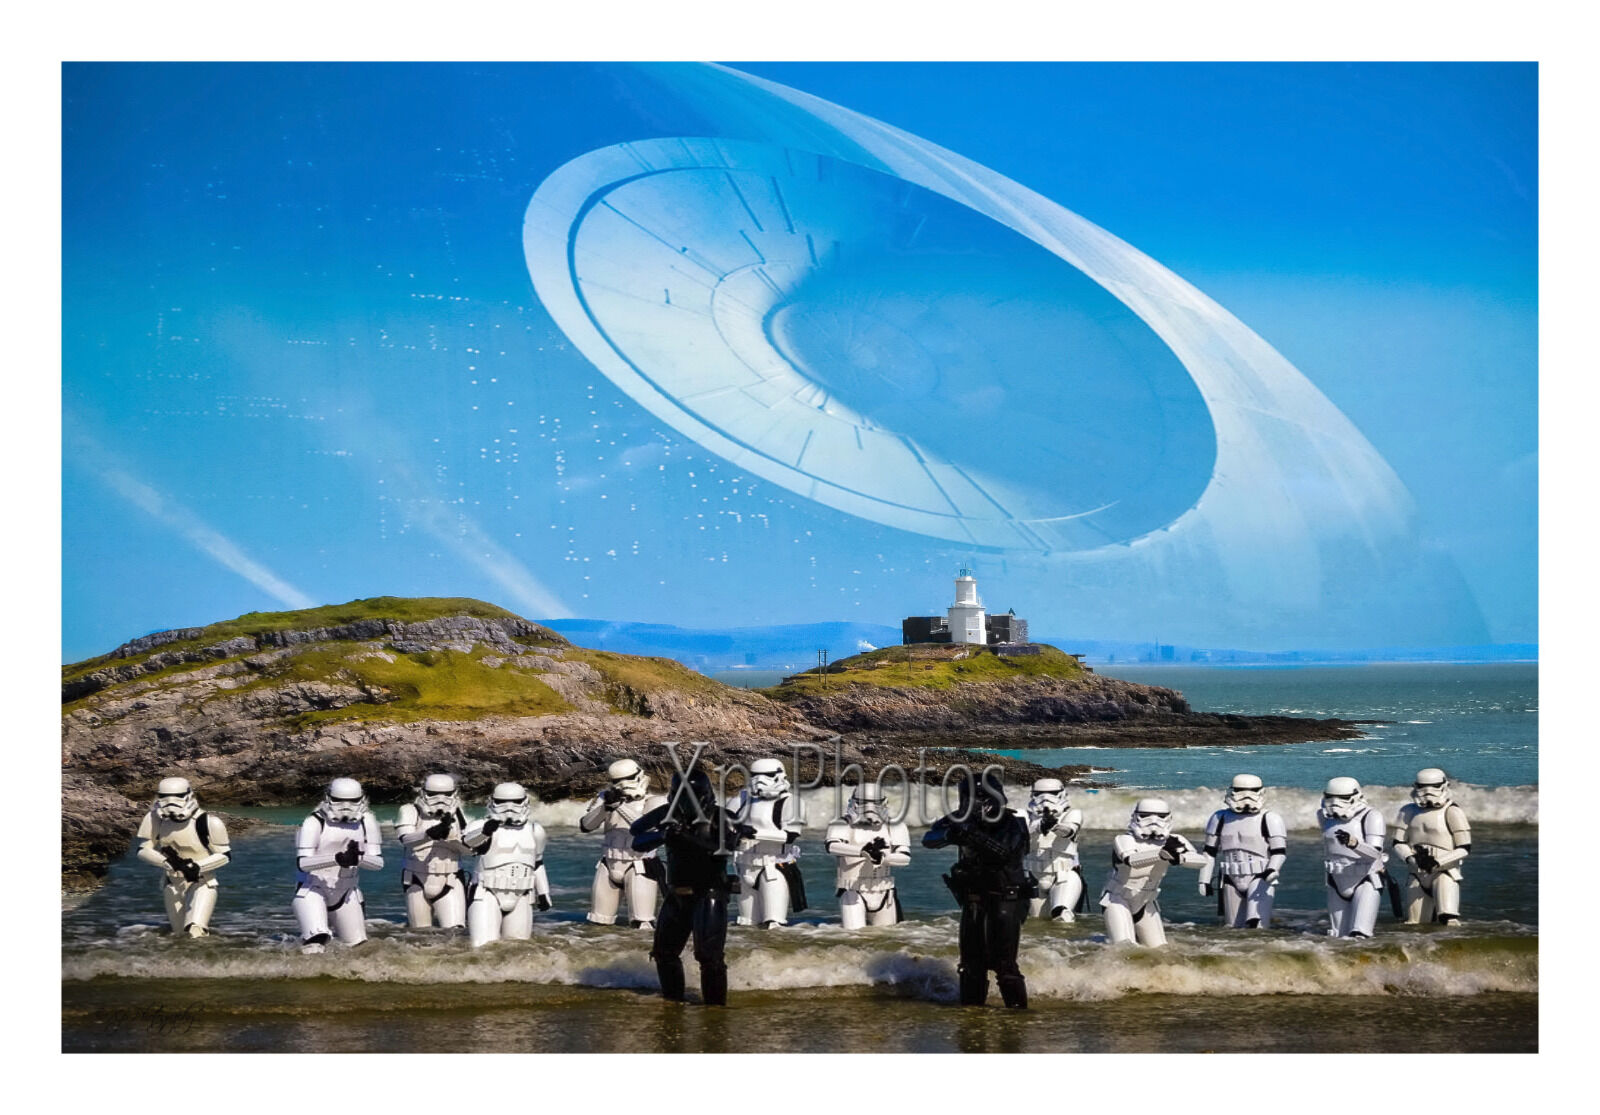 Stormtroopers Mumbles Lighthouse